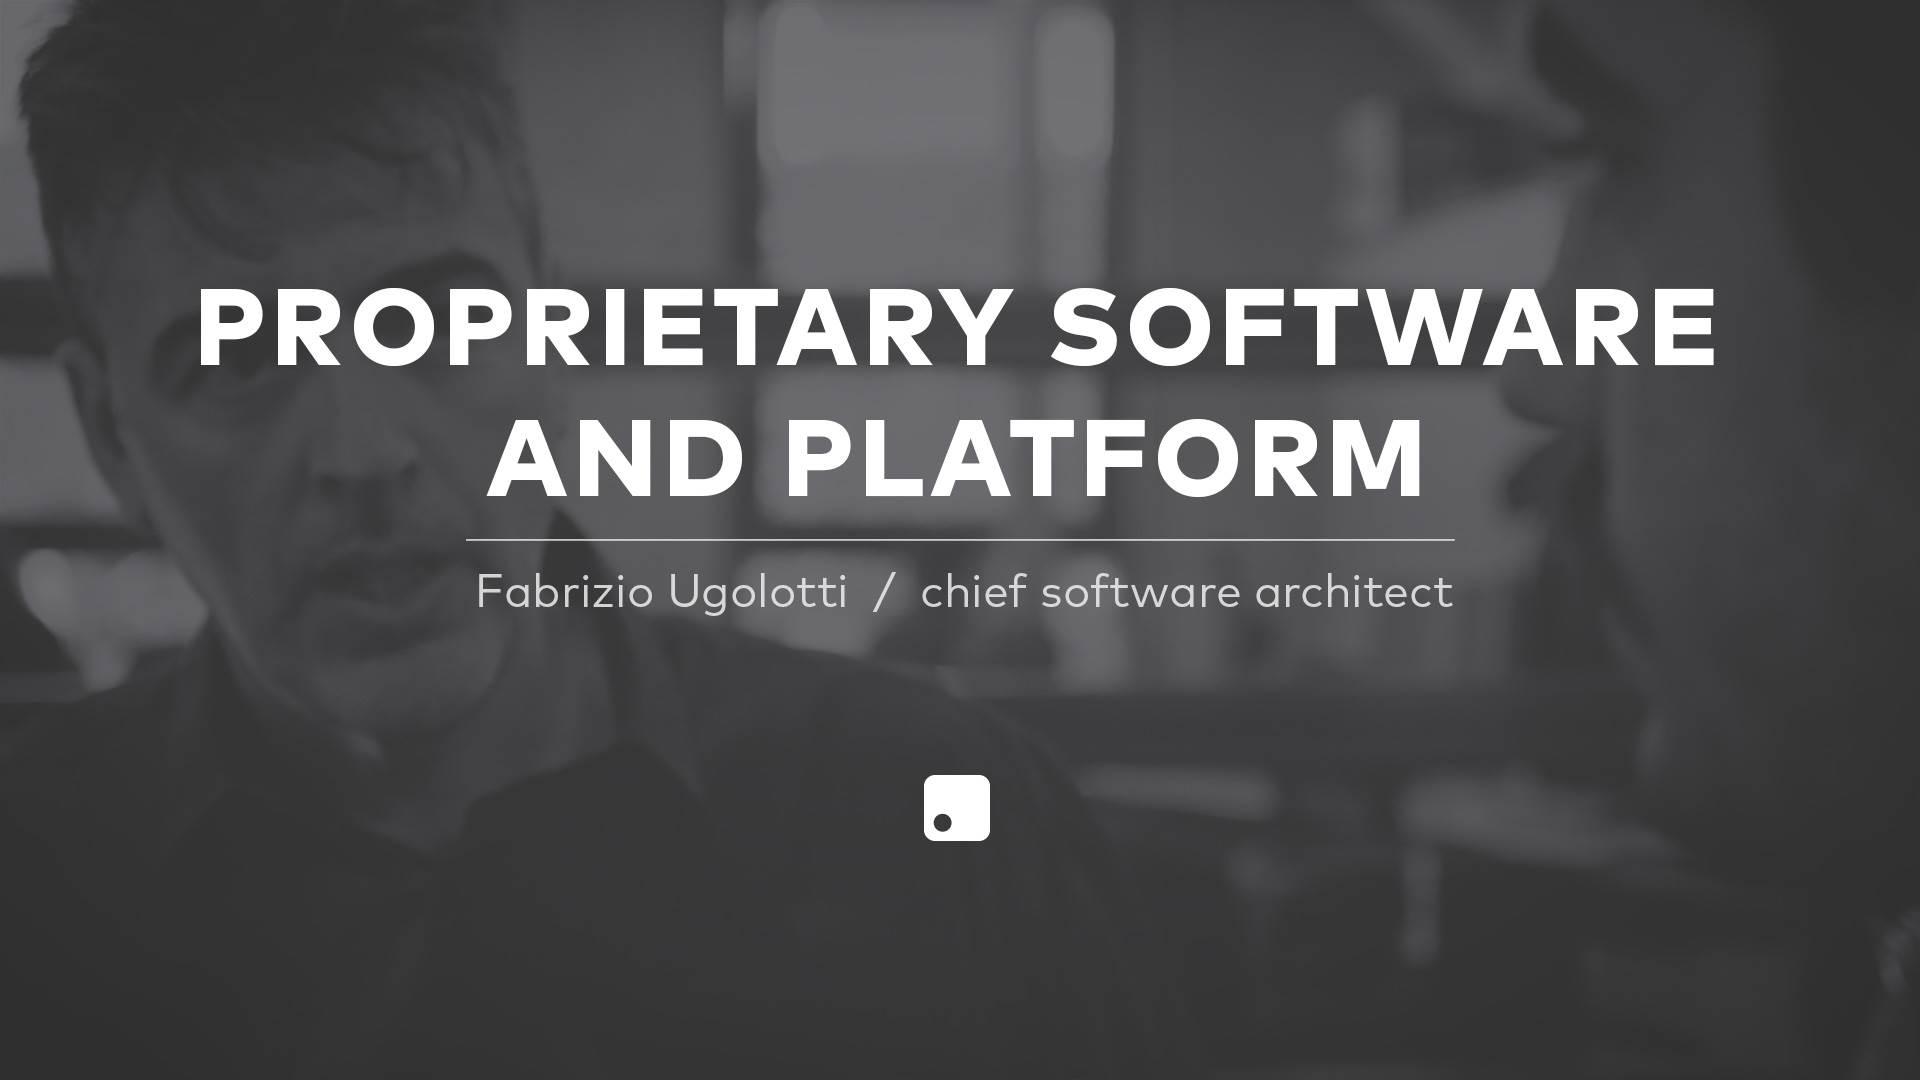 Siglacom Strategy Lab<br>Proprietary software and platform